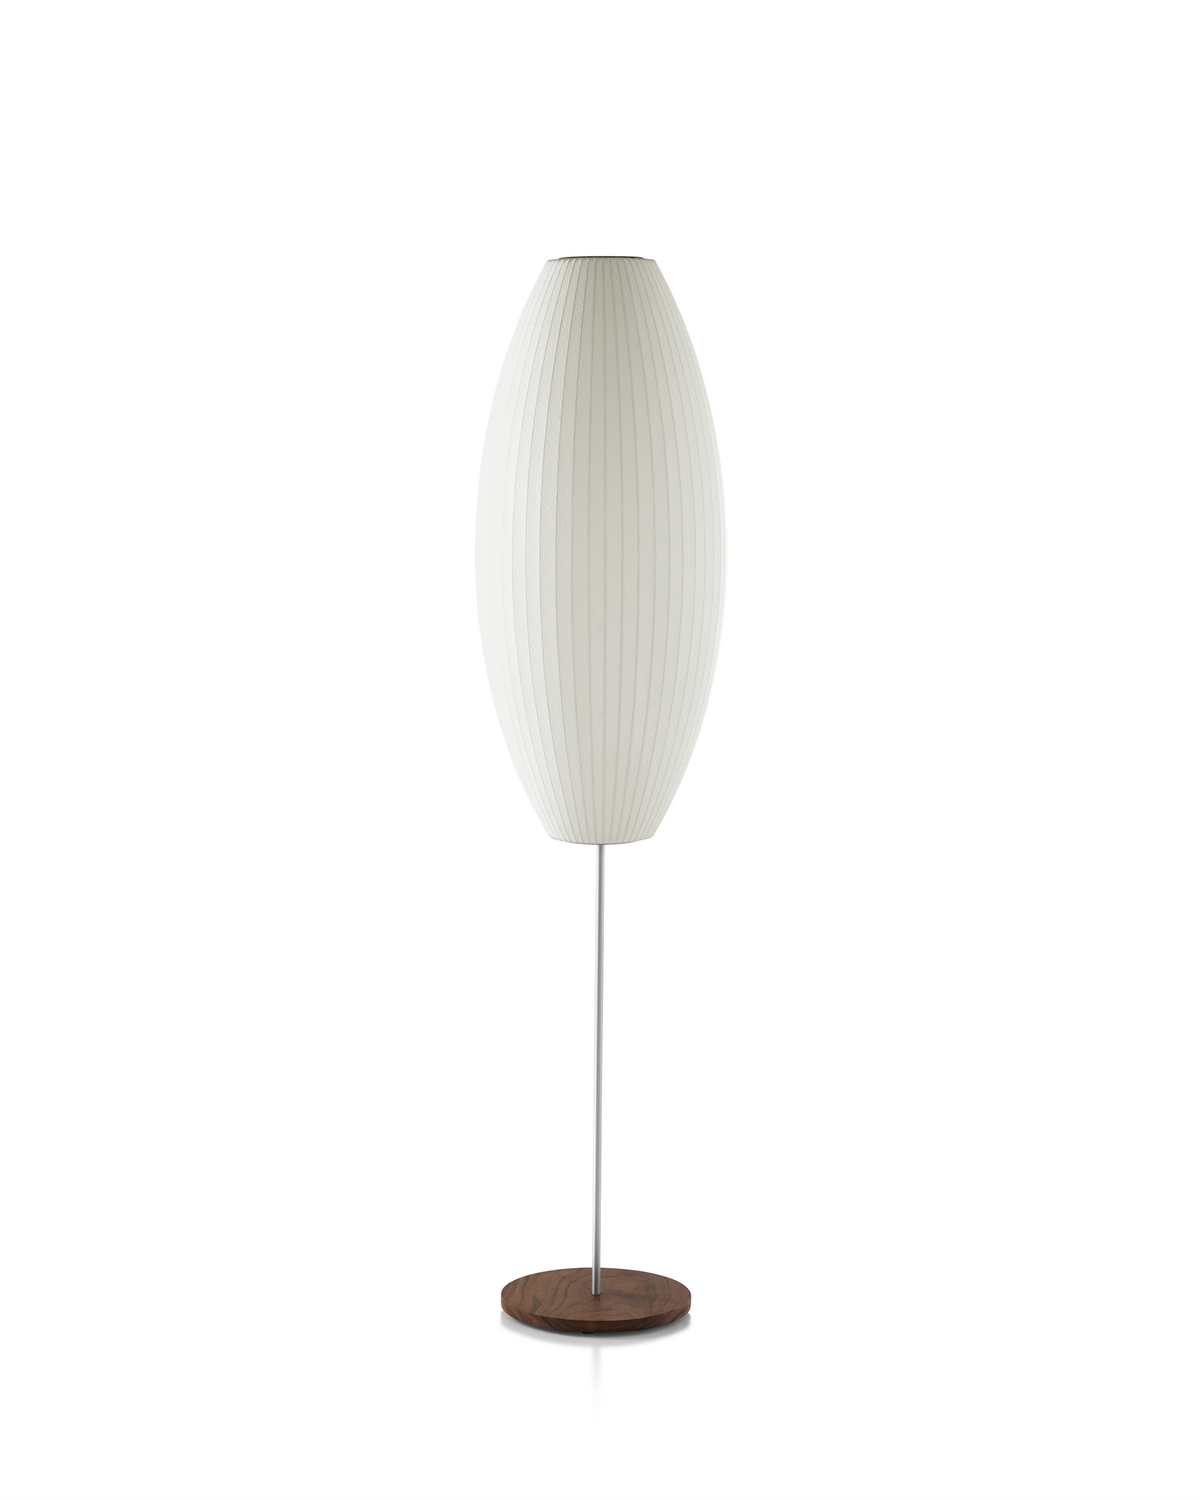 Nelson Cigar Floor Lamp